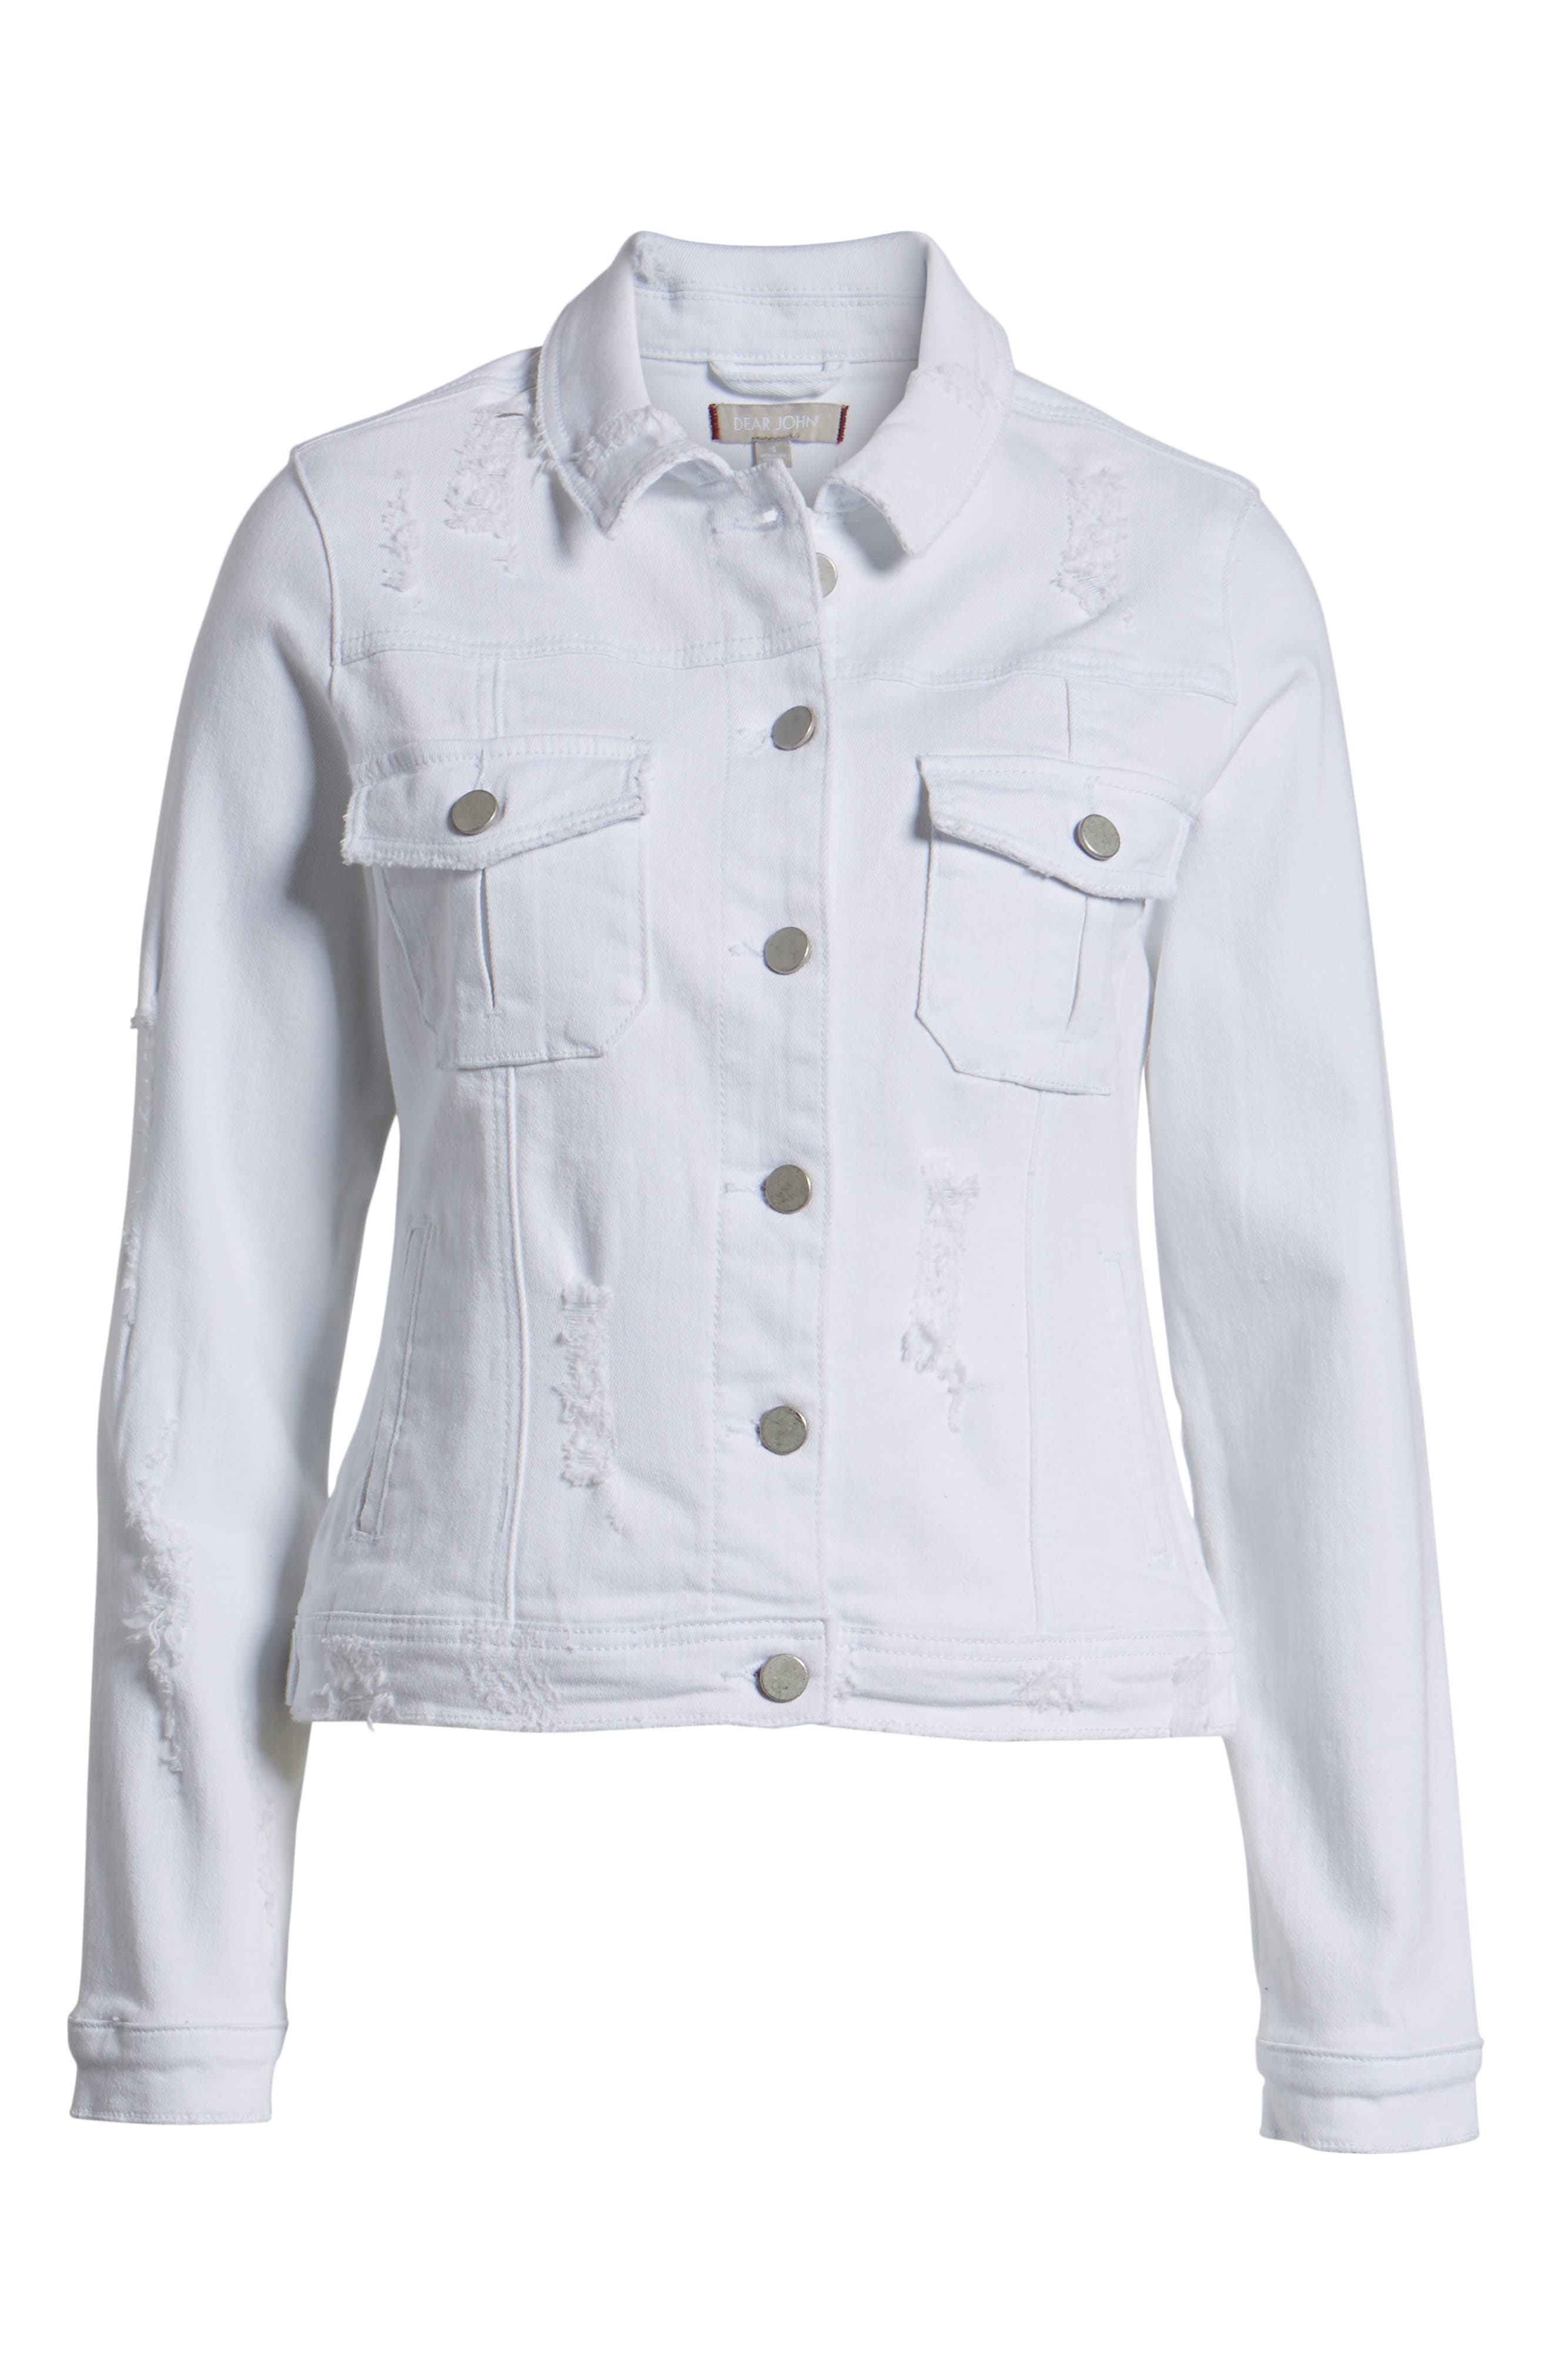 Classic Fit Distressed Denim Jacket,                             Alternate thumbnail 7, color,                             White